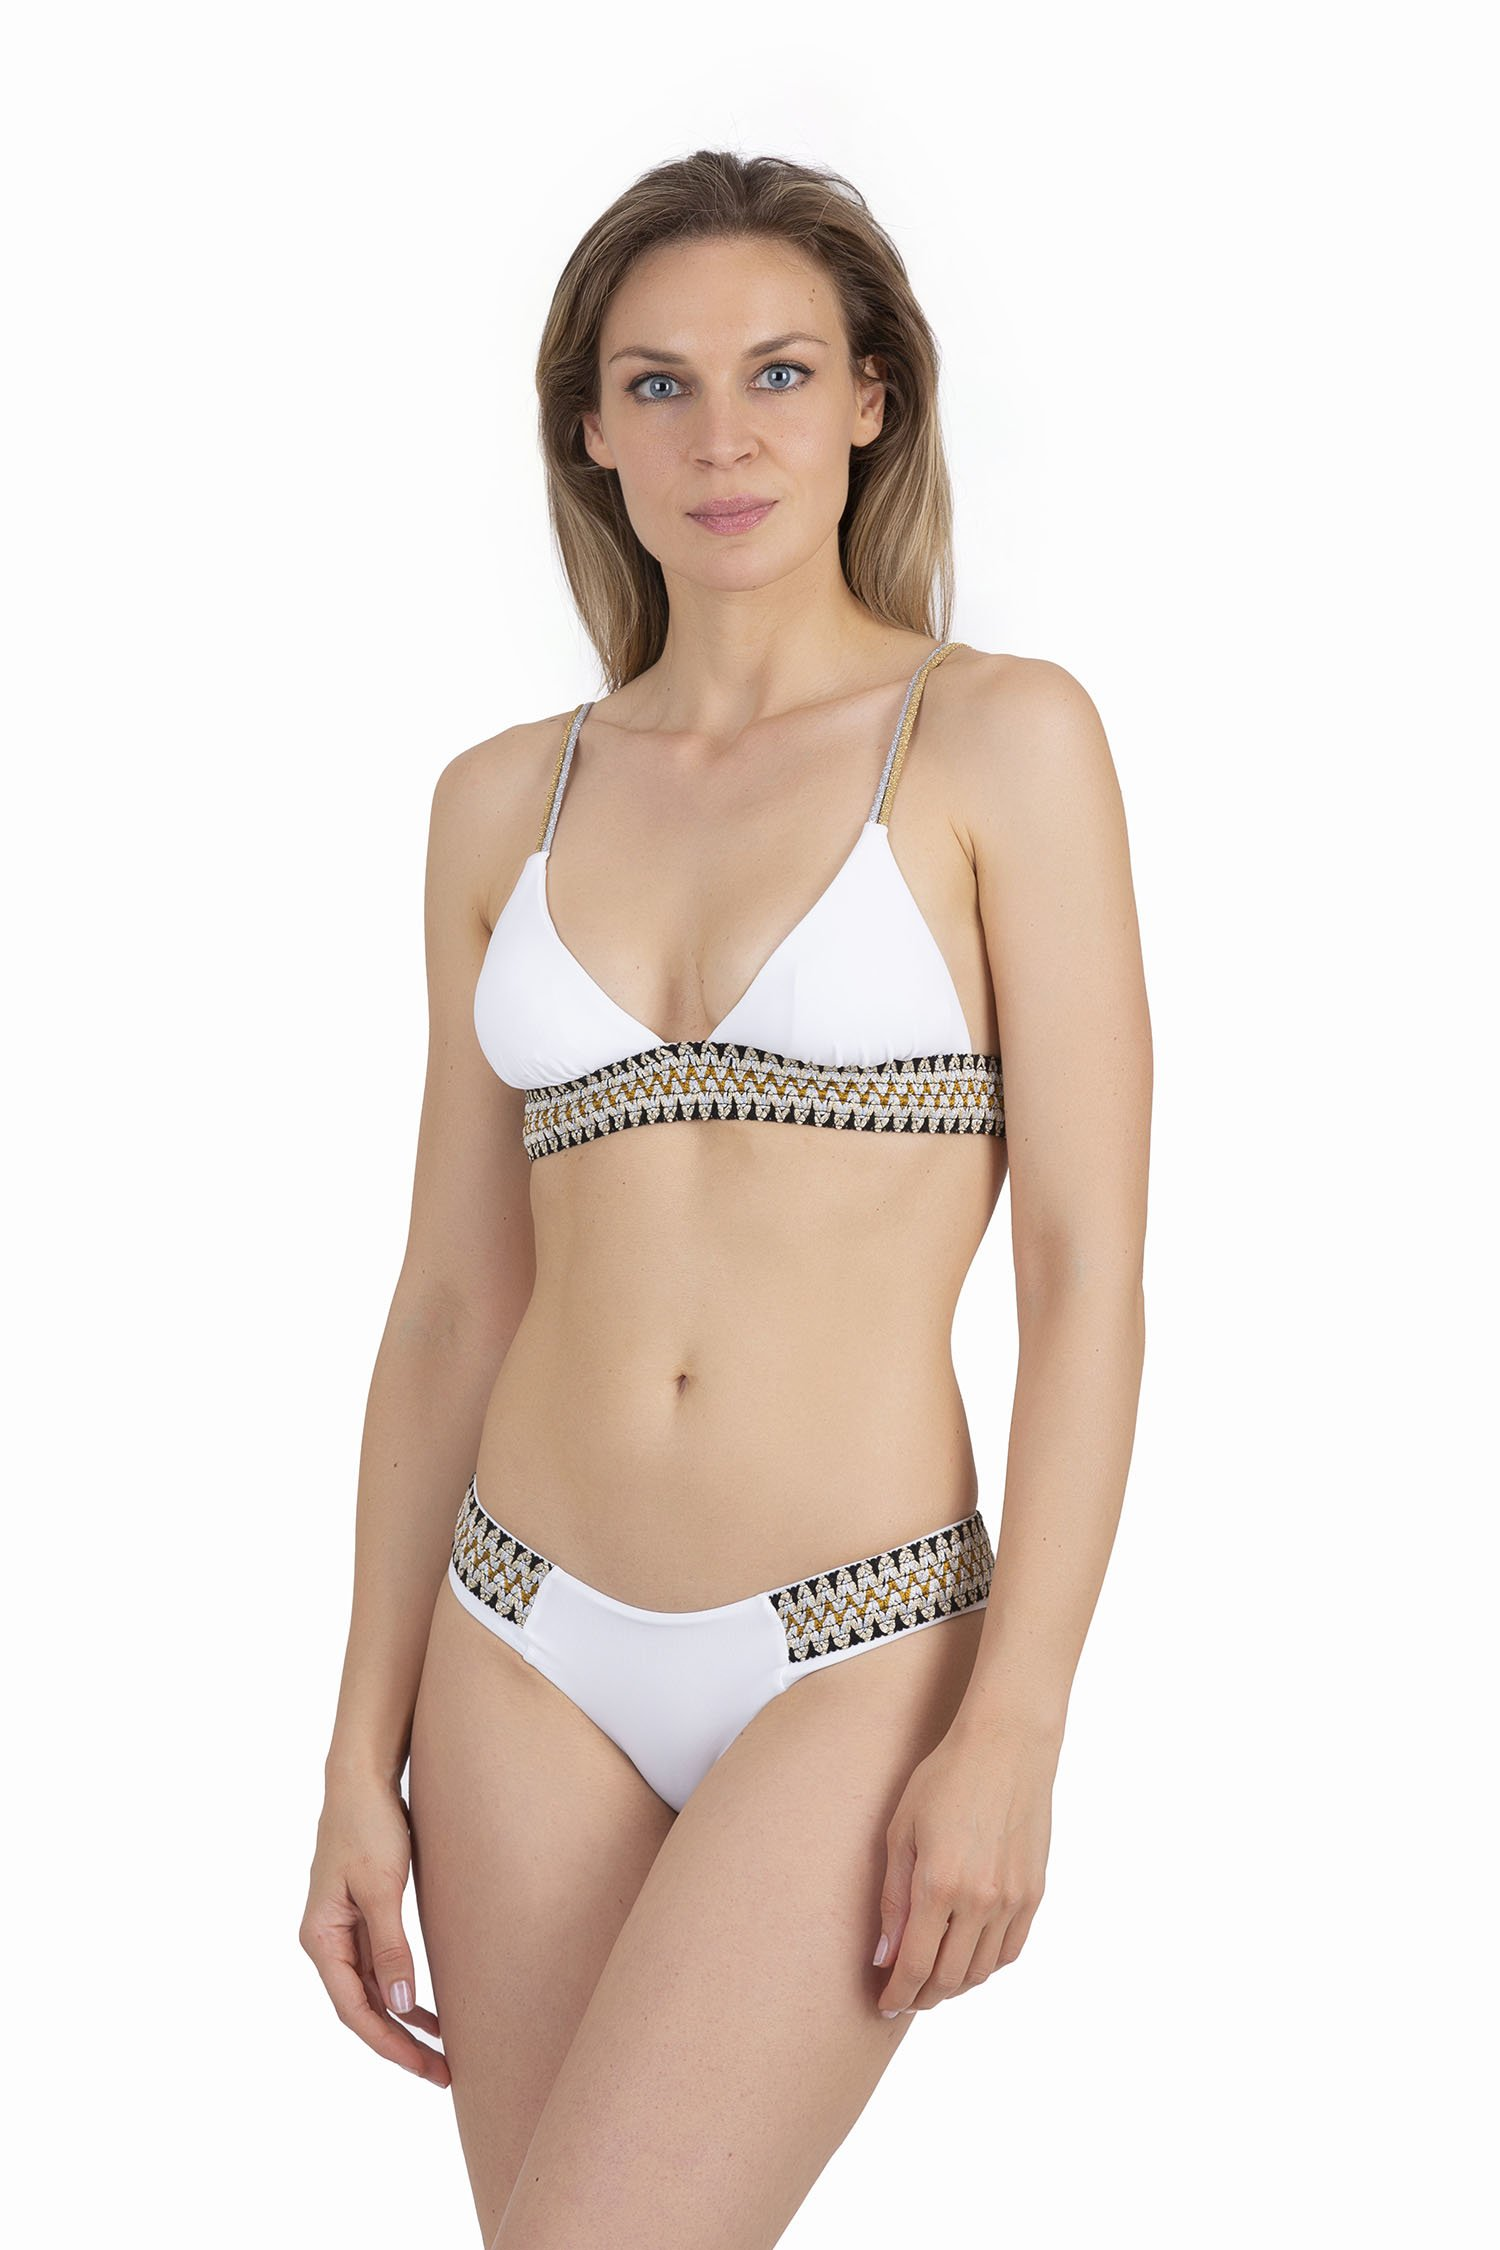 TRIANGLE  BIKINI WITH LUREX ELASTICS - Bianco White 001